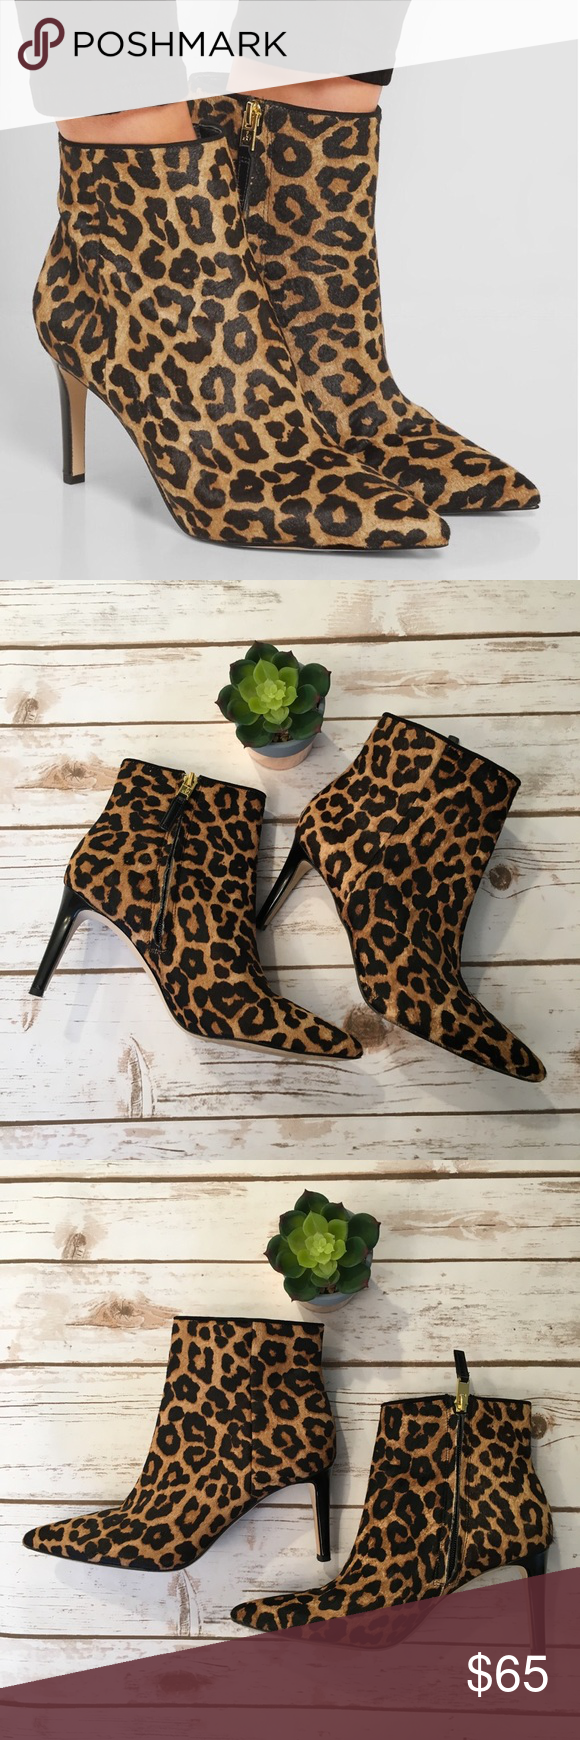 429b930e49472 Sam Edelman Karen Calf Hair Booties Leopard Size 7 Gorgeous and sexy leopard  print Karen booties